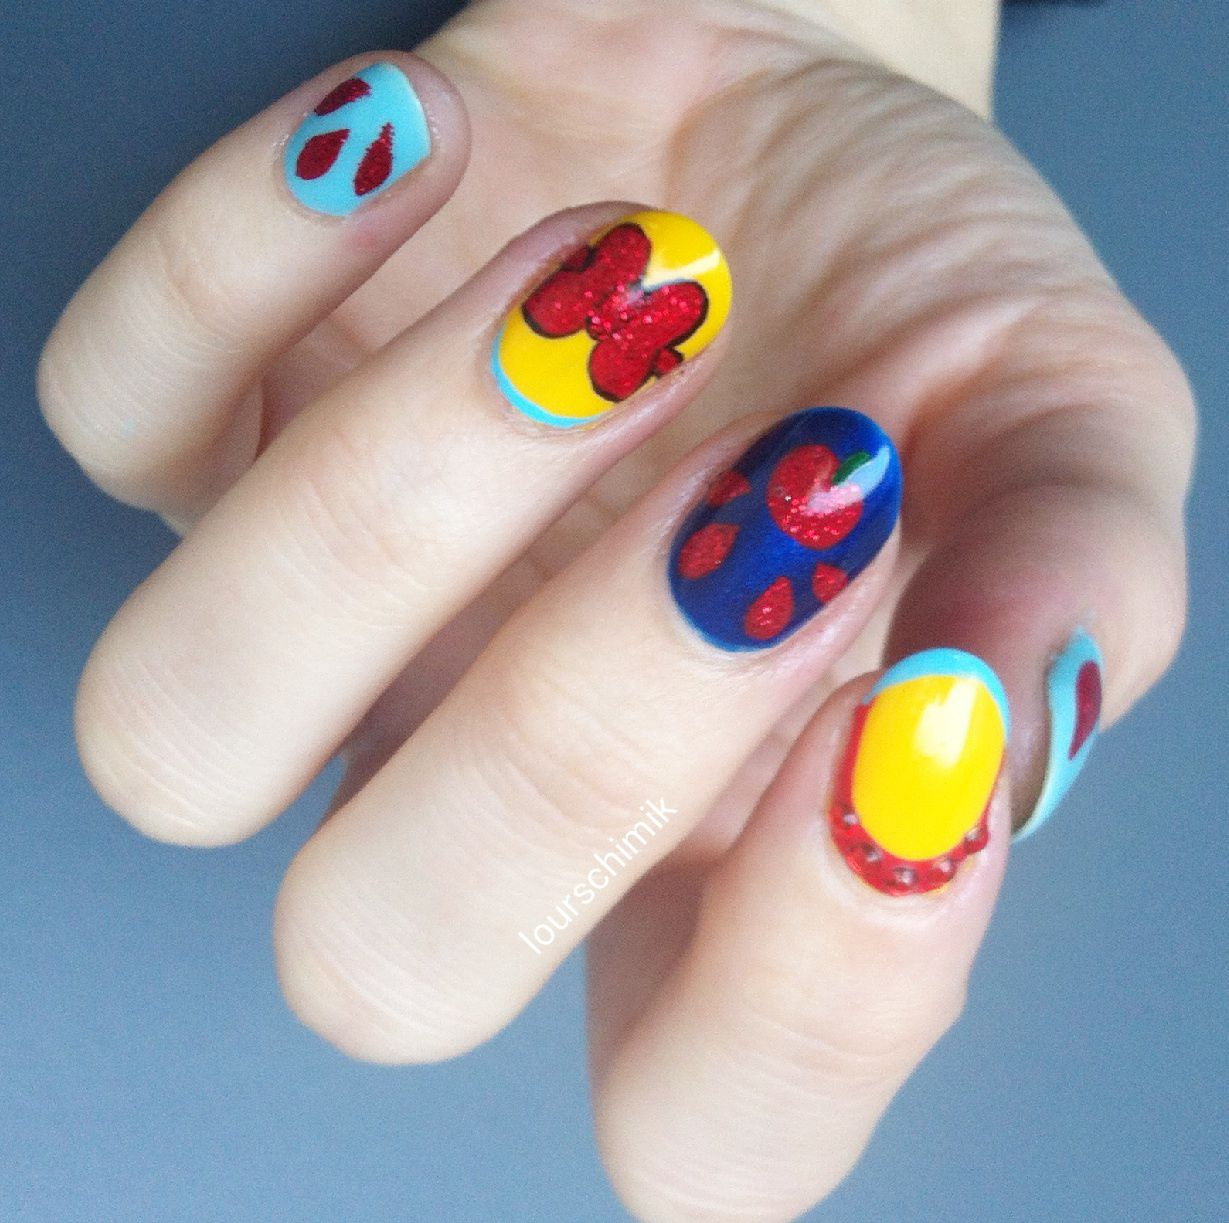 Disney nails - Blanche Neige